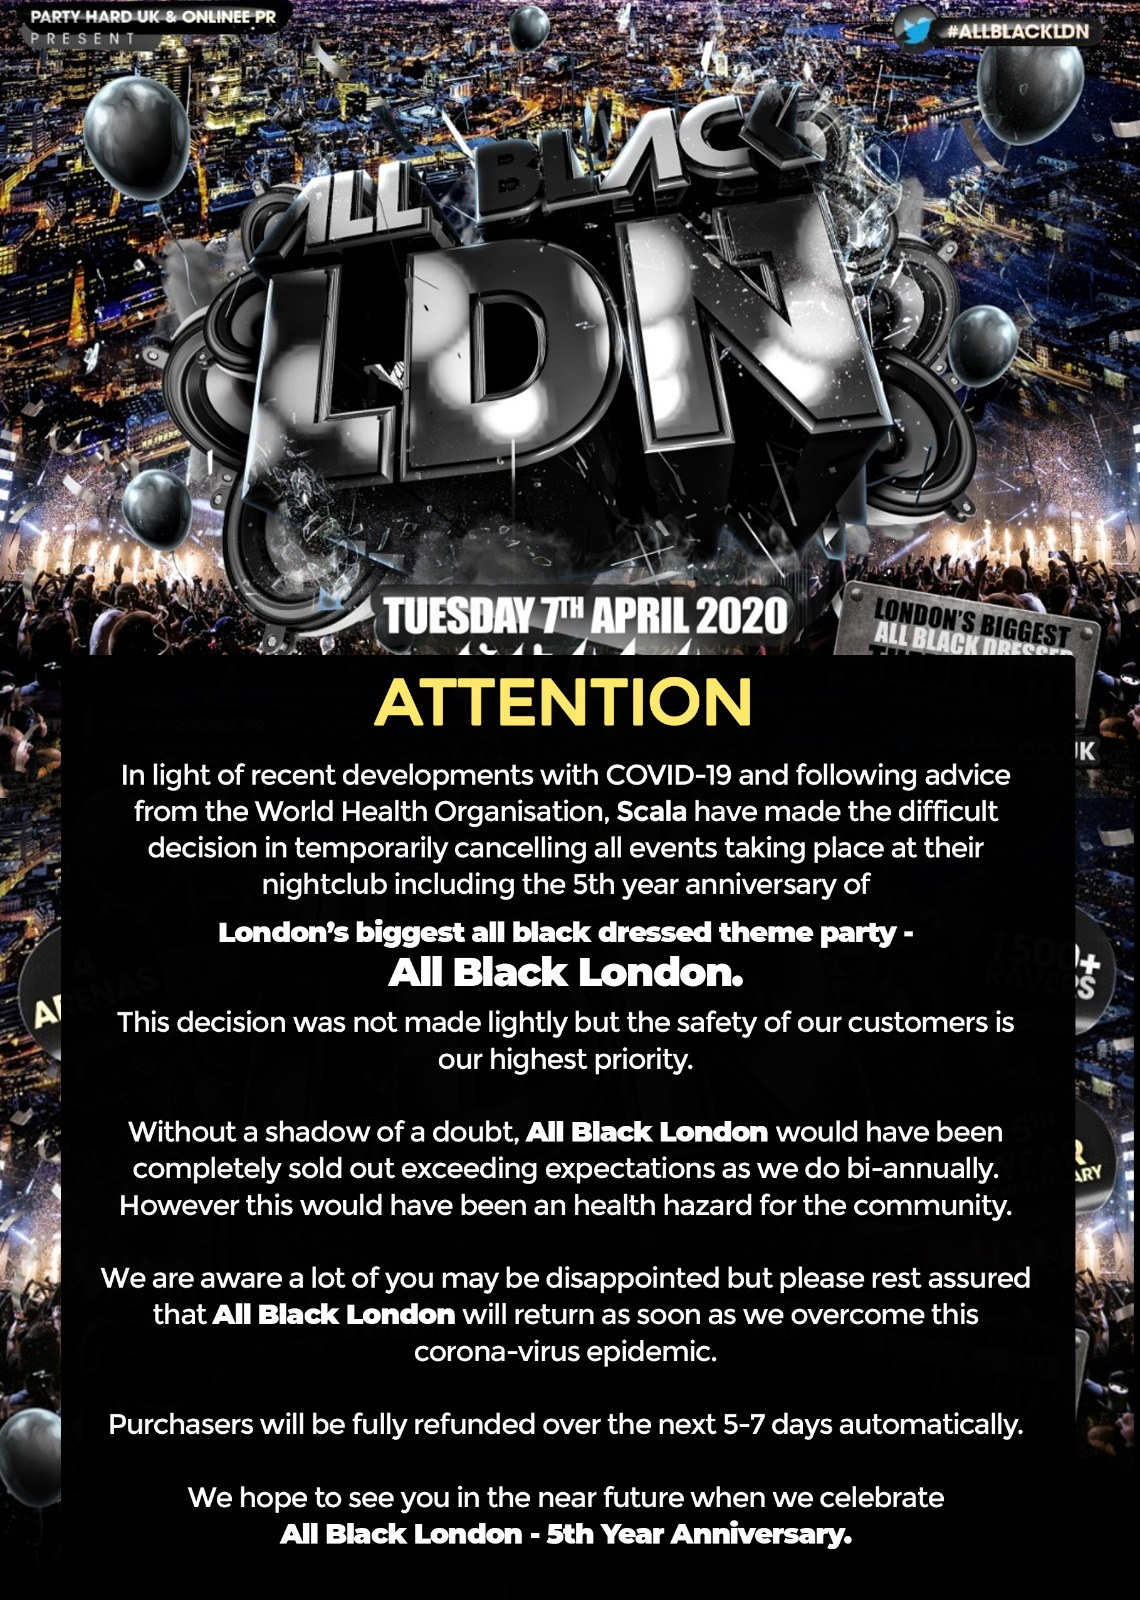 All Black London